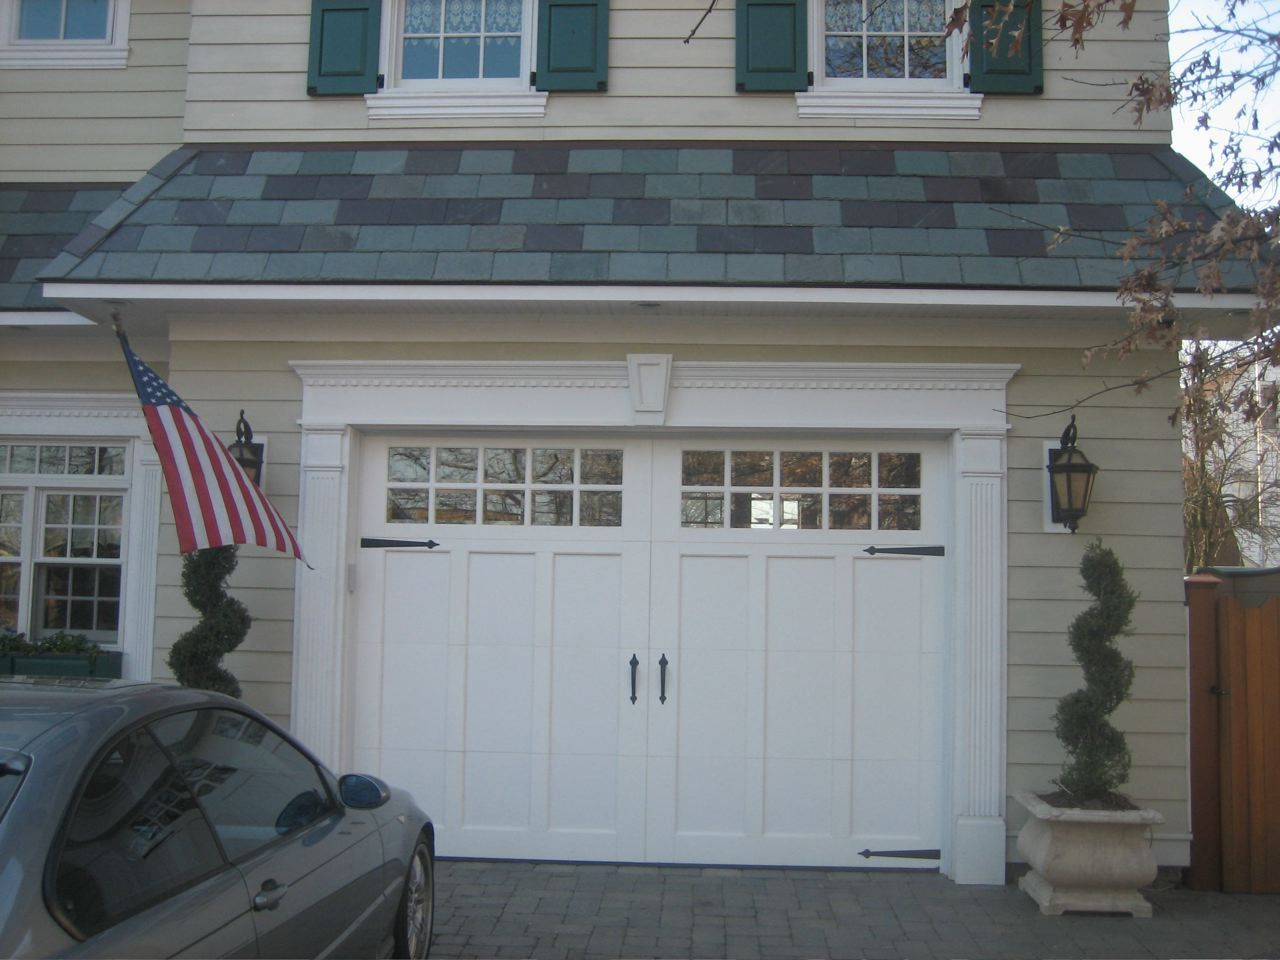 Azek trim front door azek www azek com azek is the leading brand decorative trim over garage door spending time can be required by finding the proper garage door for your own home or comp rubansaba